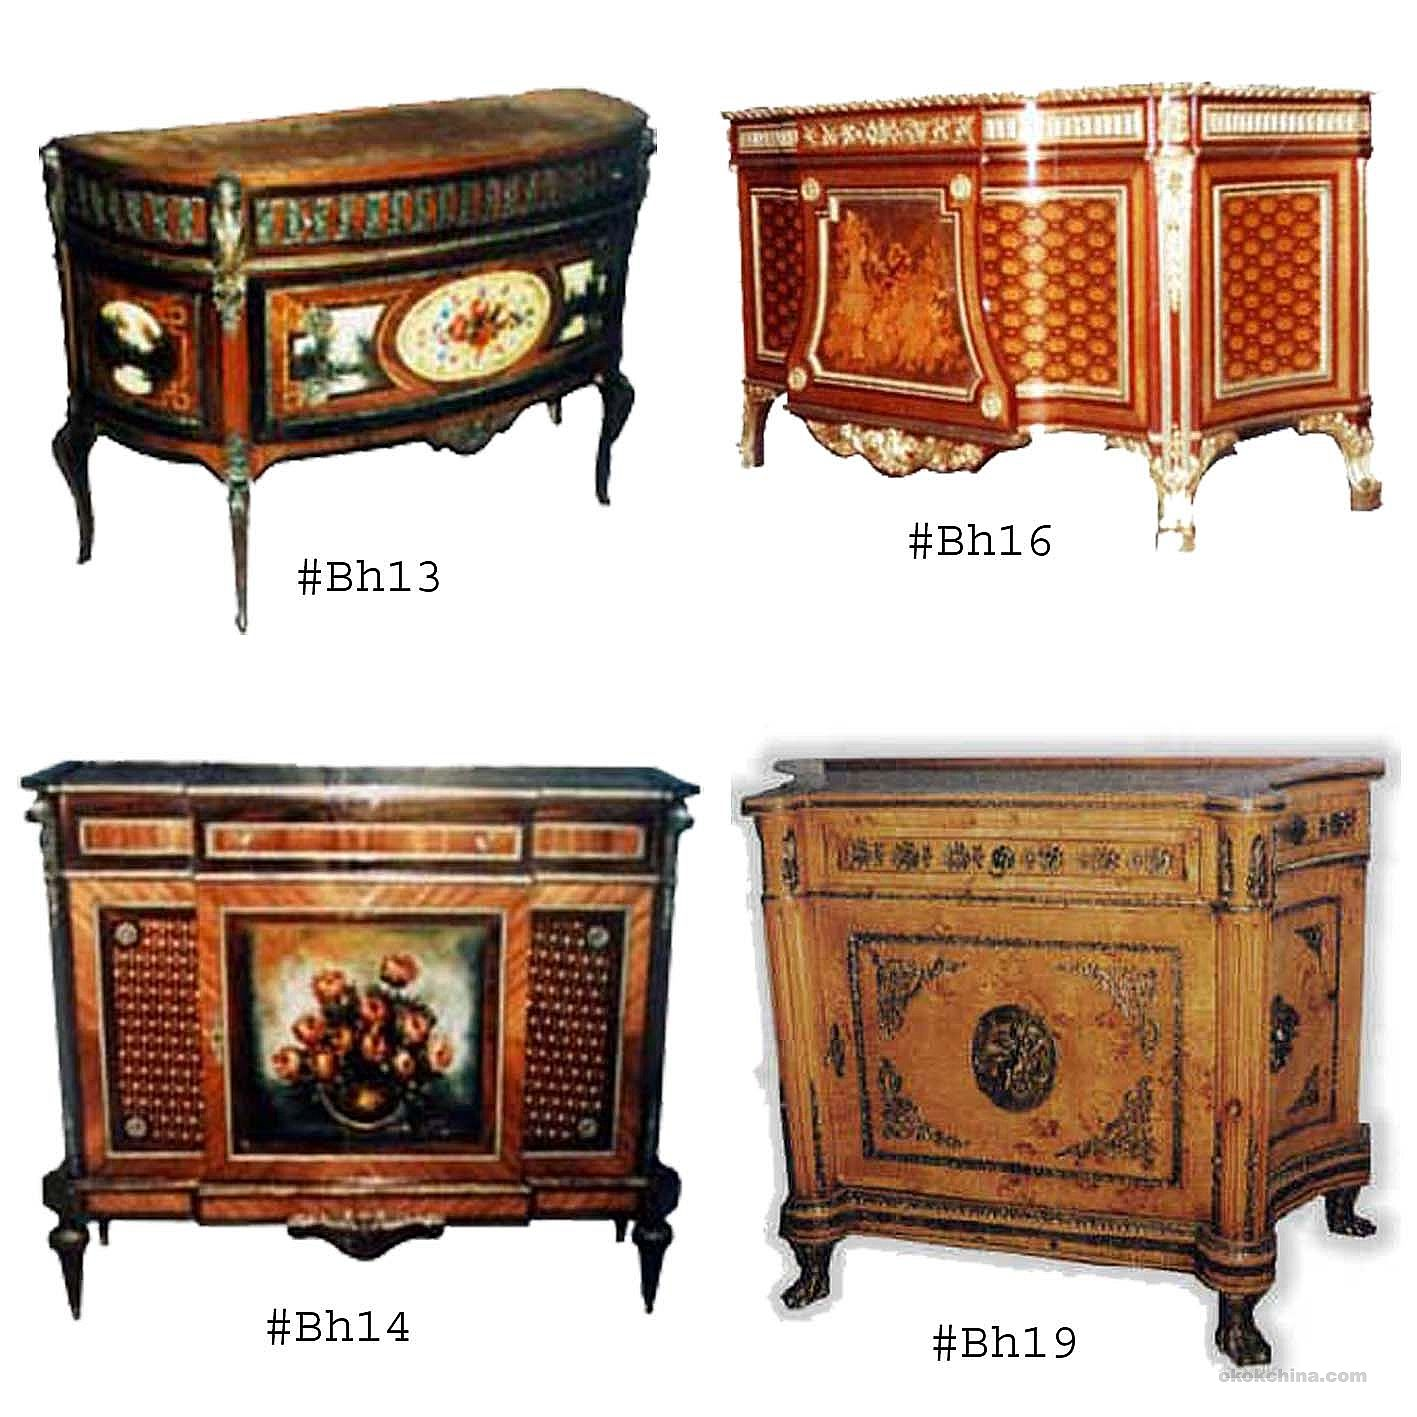 Antique Furniture | Antique furniture reproduction (Bahut) - Antique Furniture Antique Furniture Reproduction (Bahut